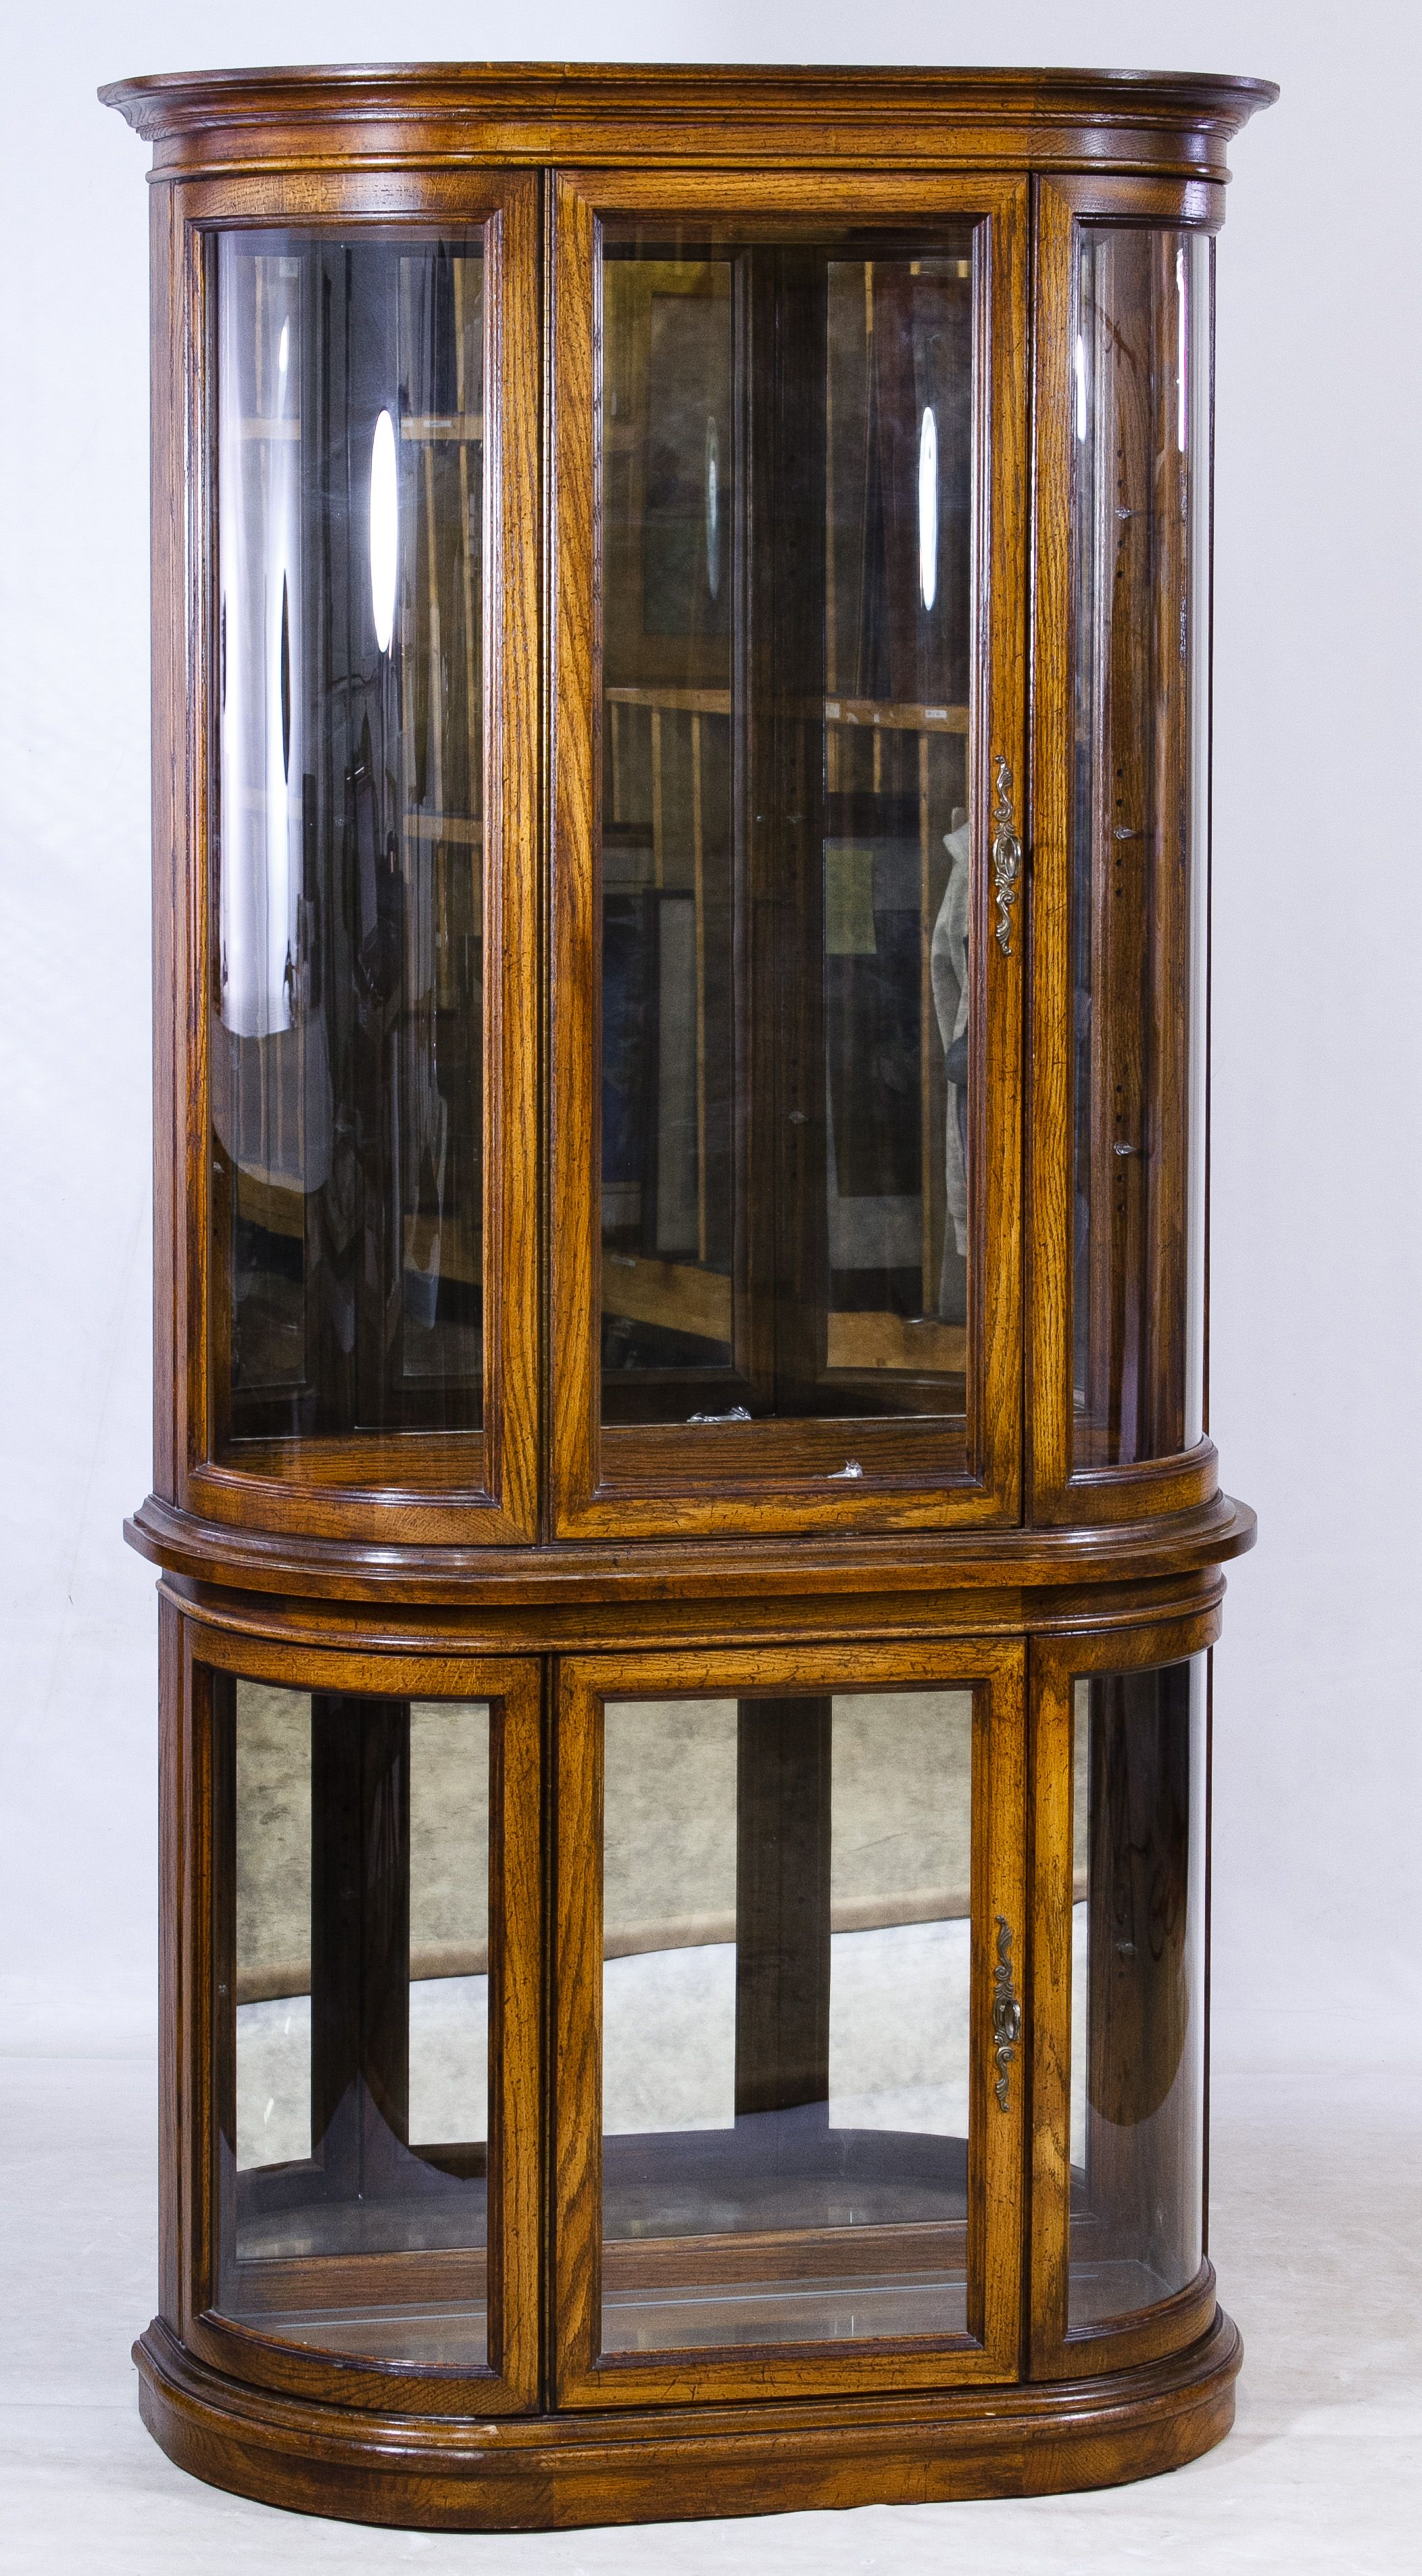 Lot 141 Oak Curved Glass Display Cabinet Two piece cabinet having